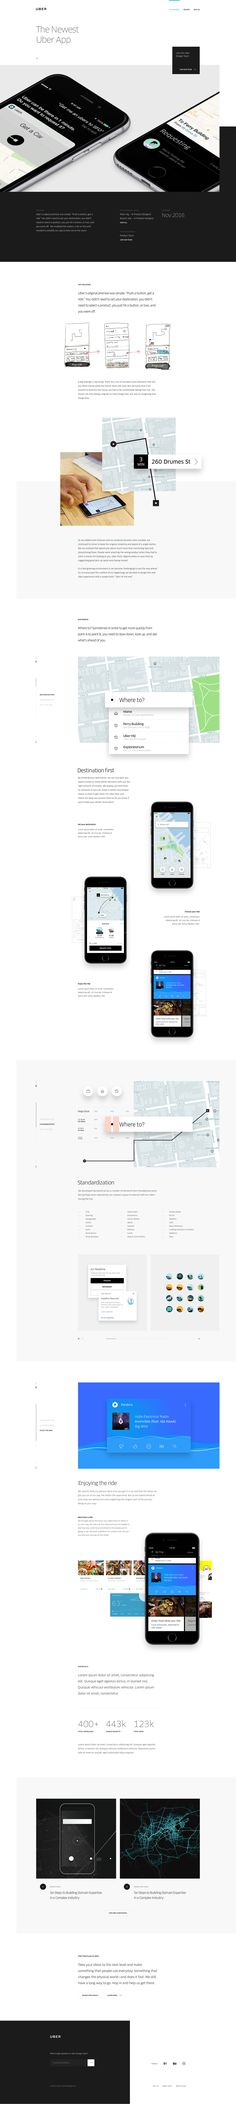 UBER design case study and UI design concept by UENO.